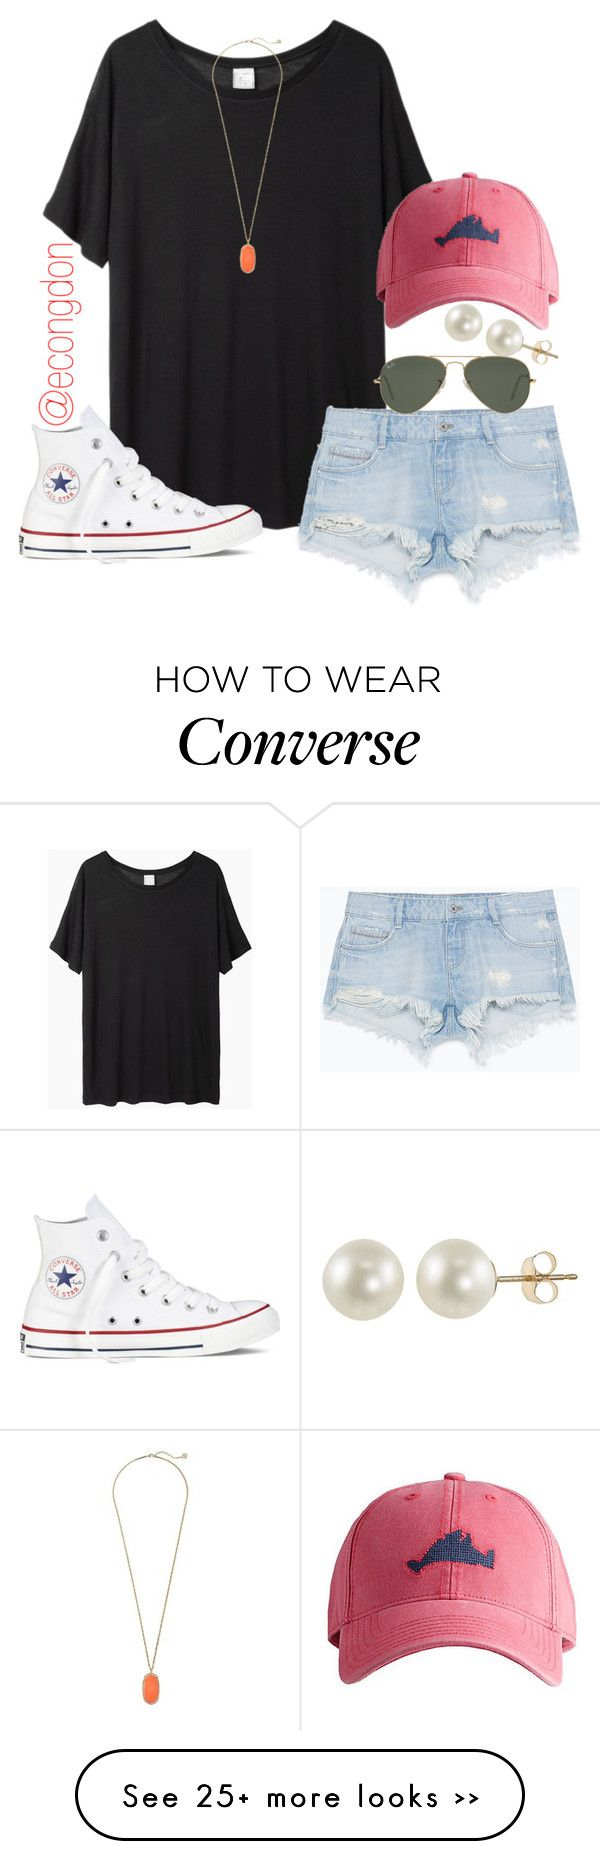 """basically the same as my last set but different colors"" by econgdon on Polyvore featuring Base Range, Harding-Lane, Zara, PearLustre by Imperial, Ray-Ban, Converse and Kendra Scott"